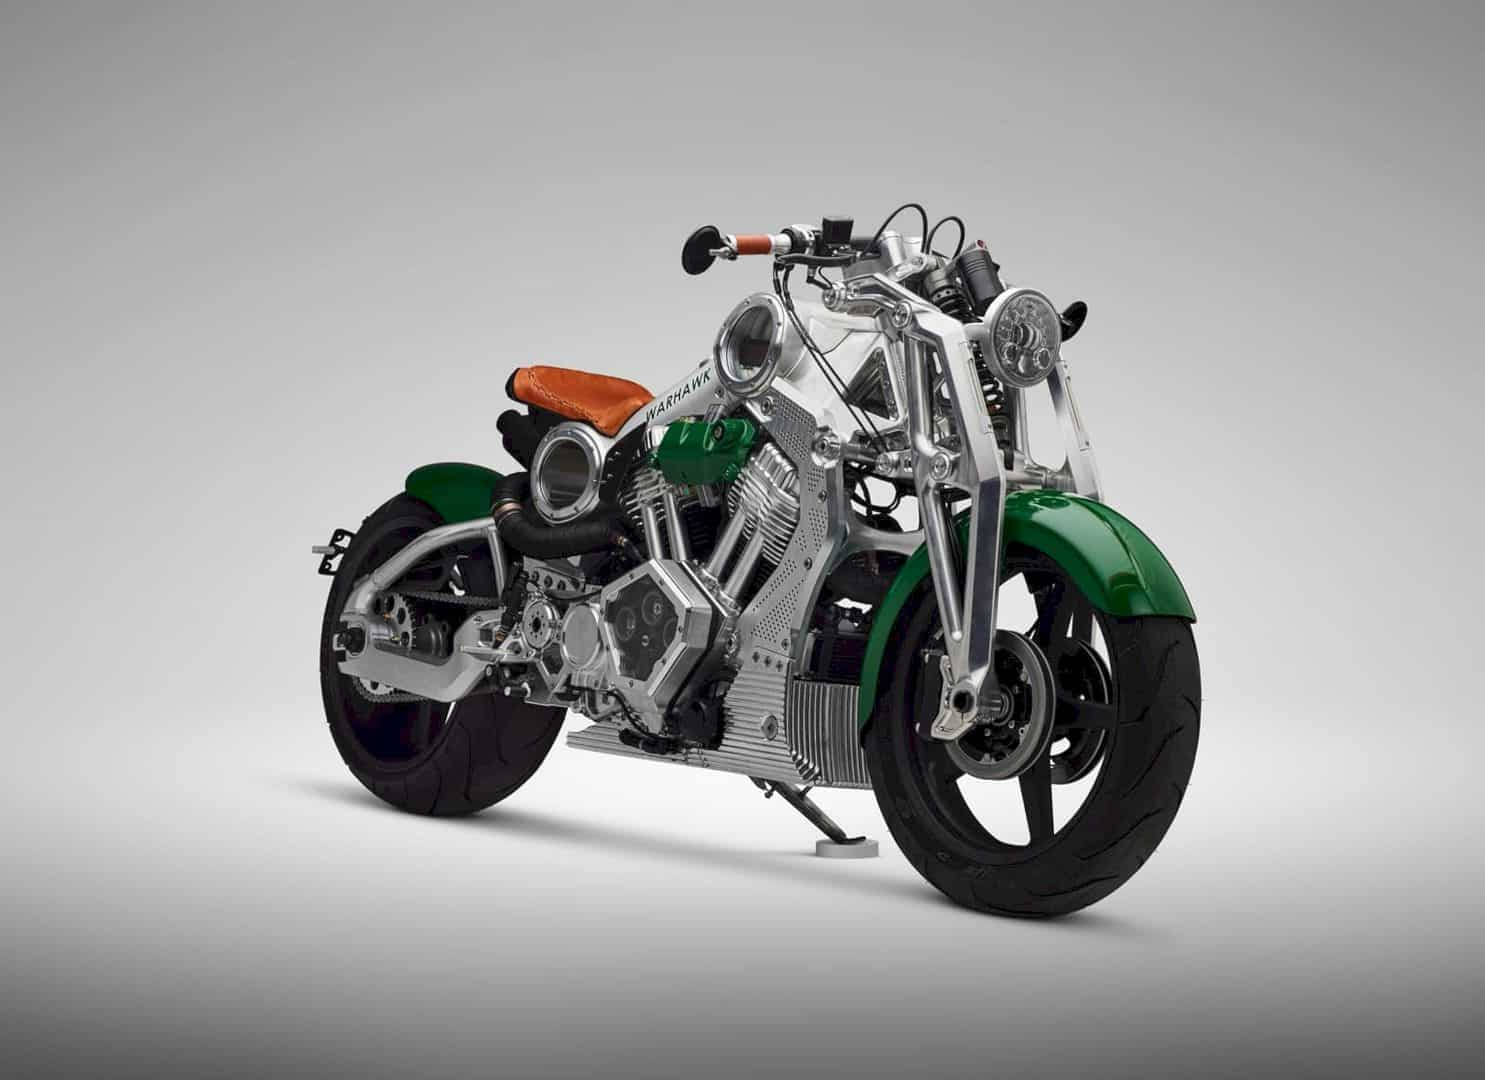 Warhawk by Curtiss Motorcycle: The First in 105 Years - That's Long Dude...